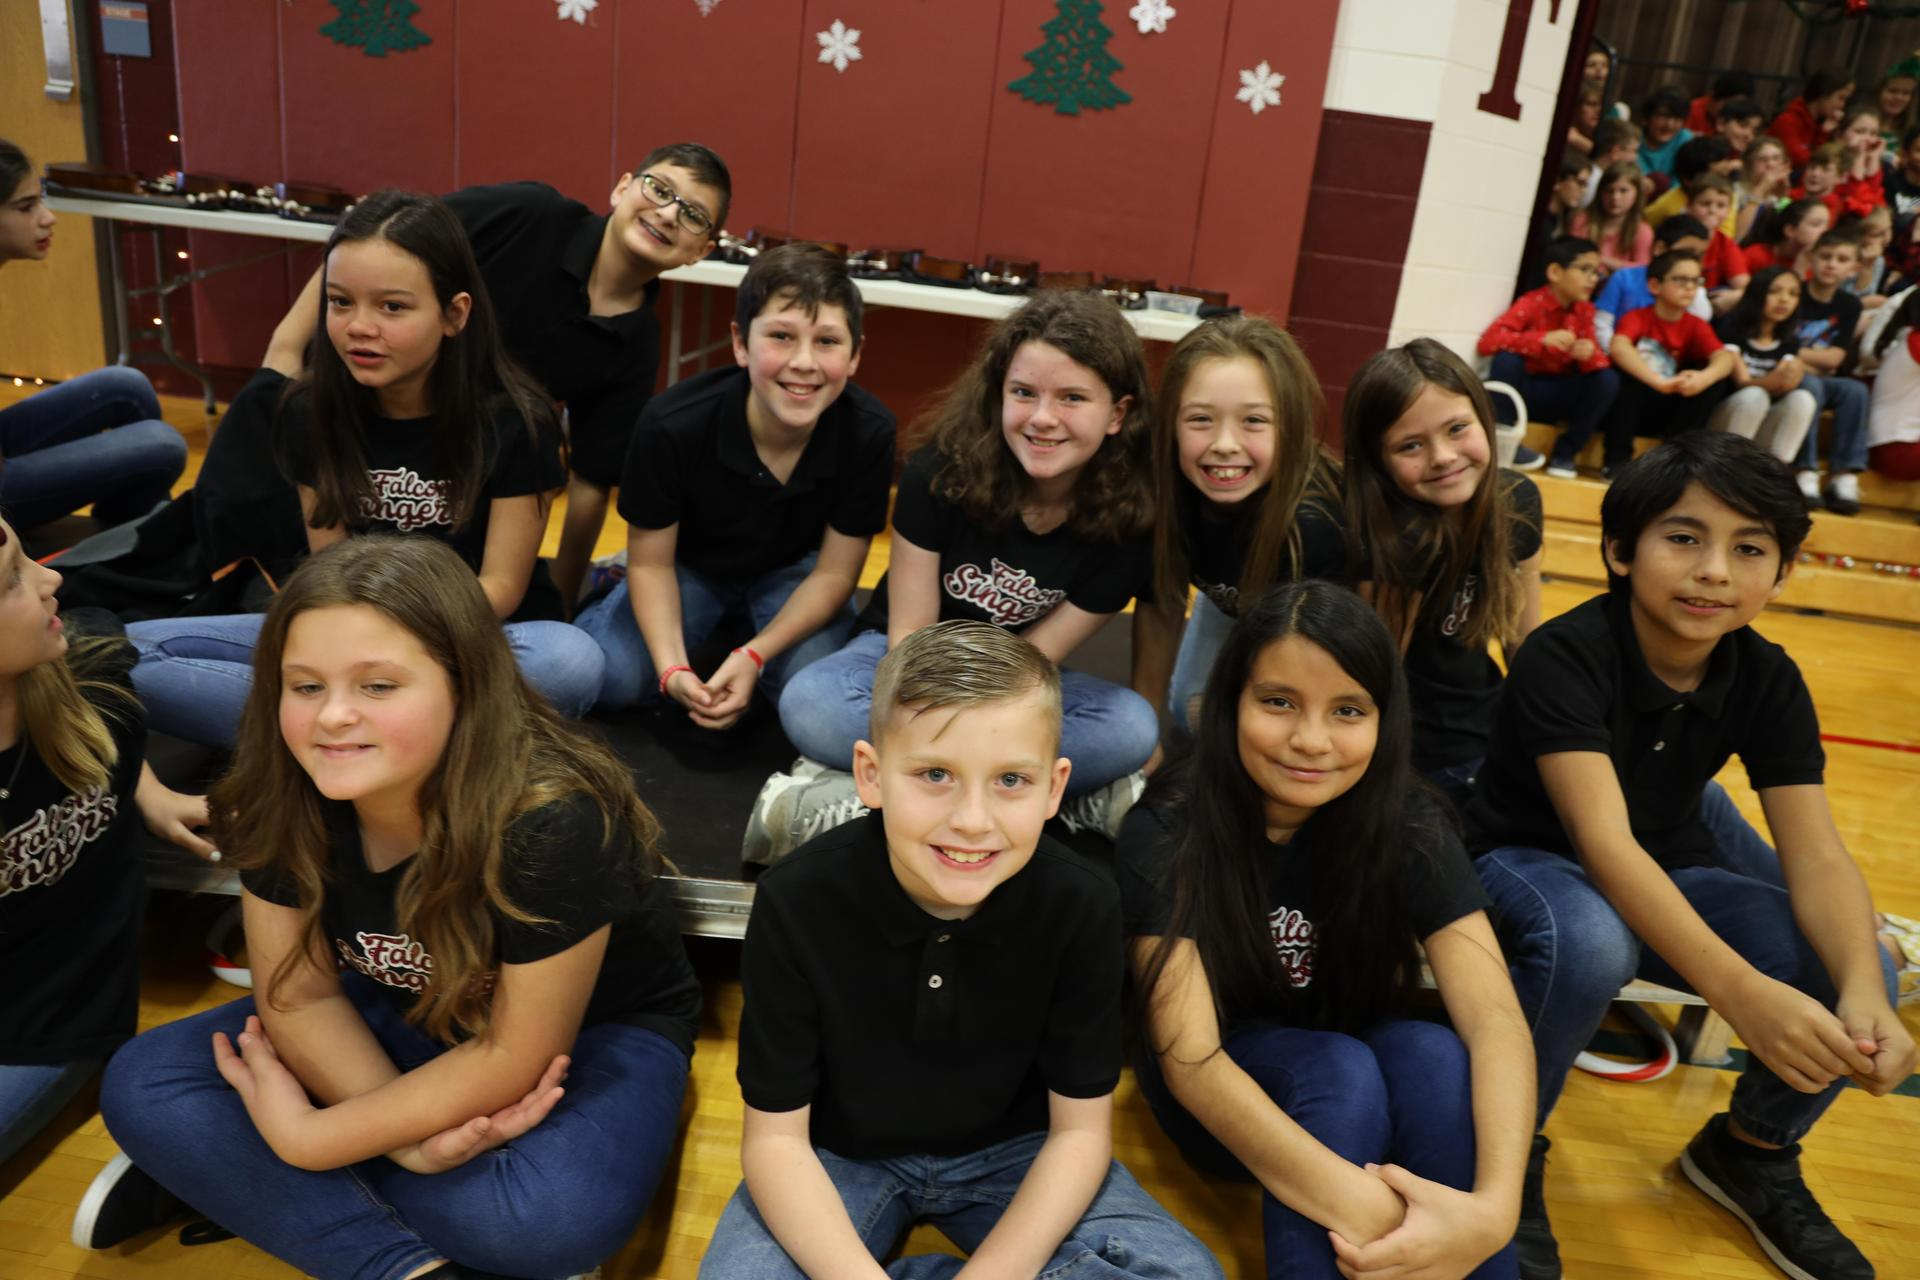 Fairmont Elementary Sounds of the Season concert